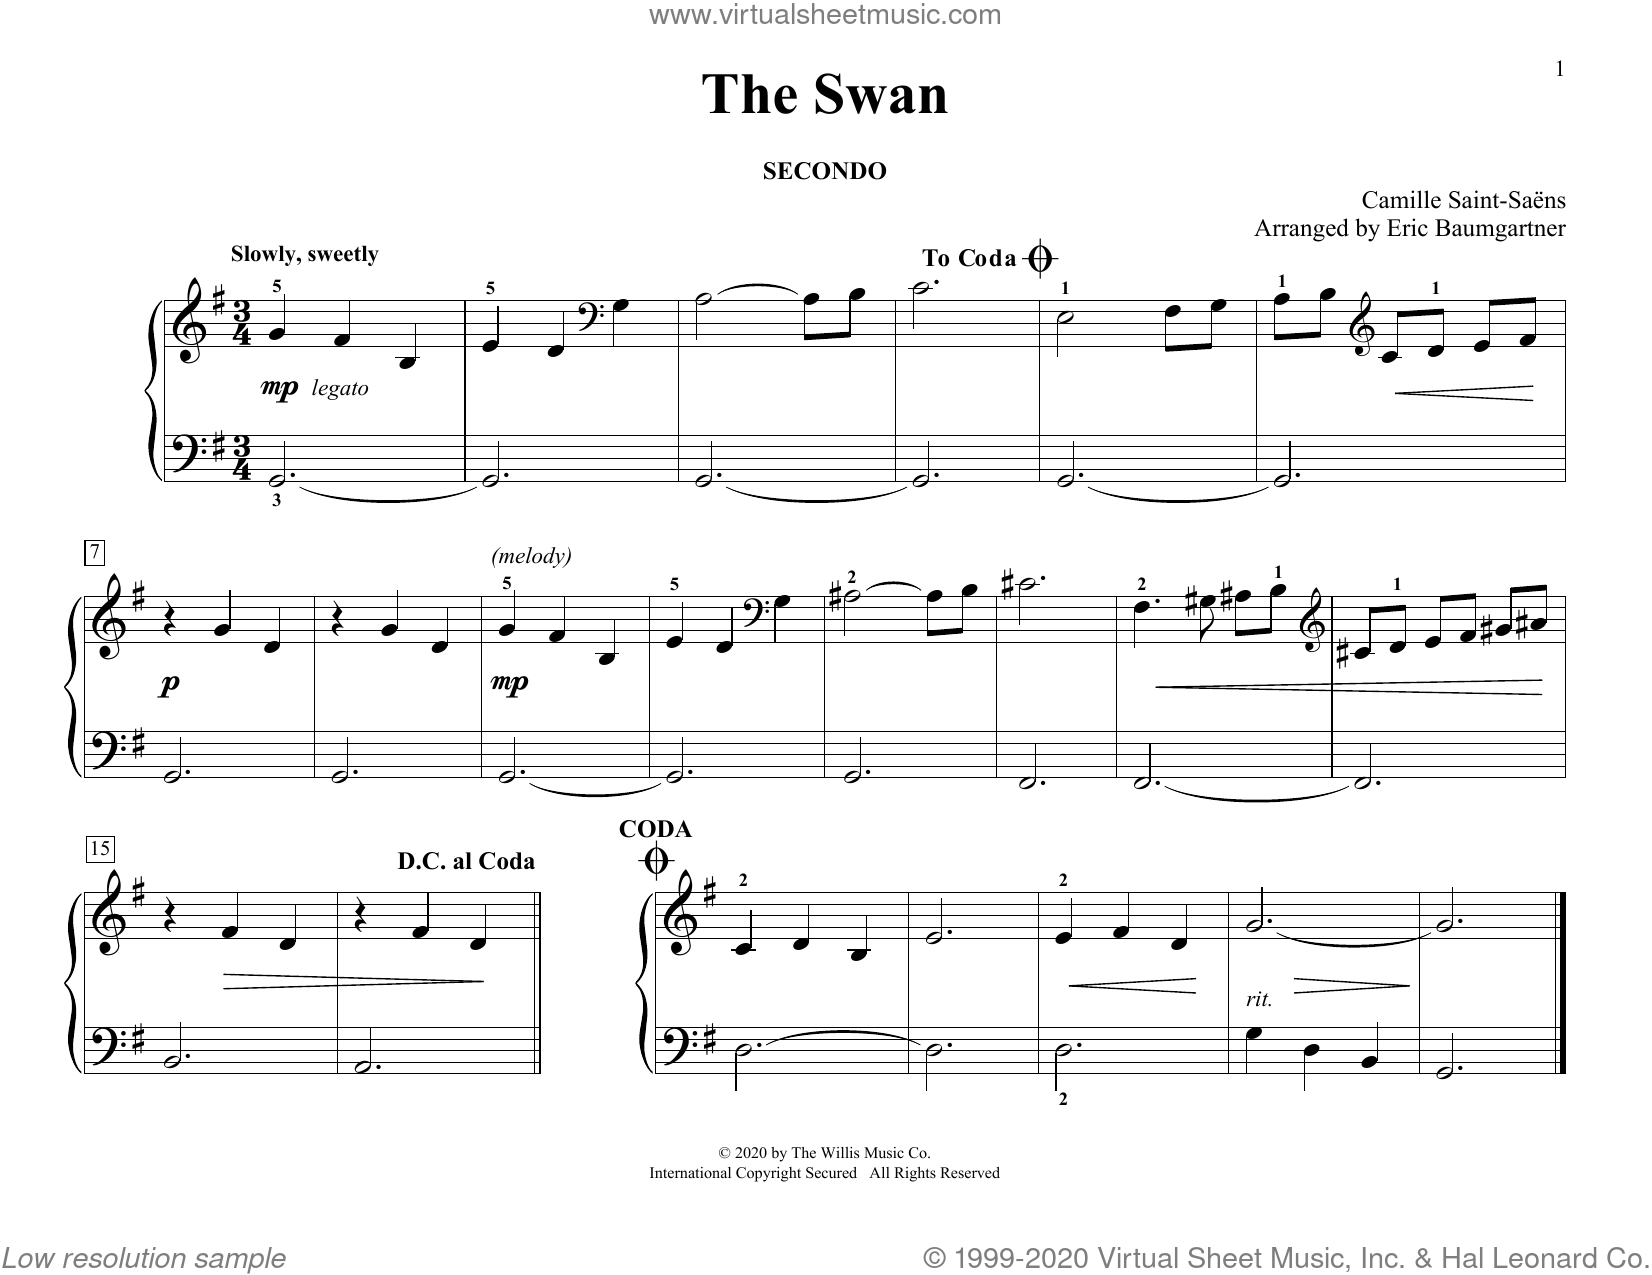 The Swan (arr. Eric Baumgartner) sheet music for piano four hands by Camille Saint-Saens and Eric Baumgartner, classical score, intermediate skill level